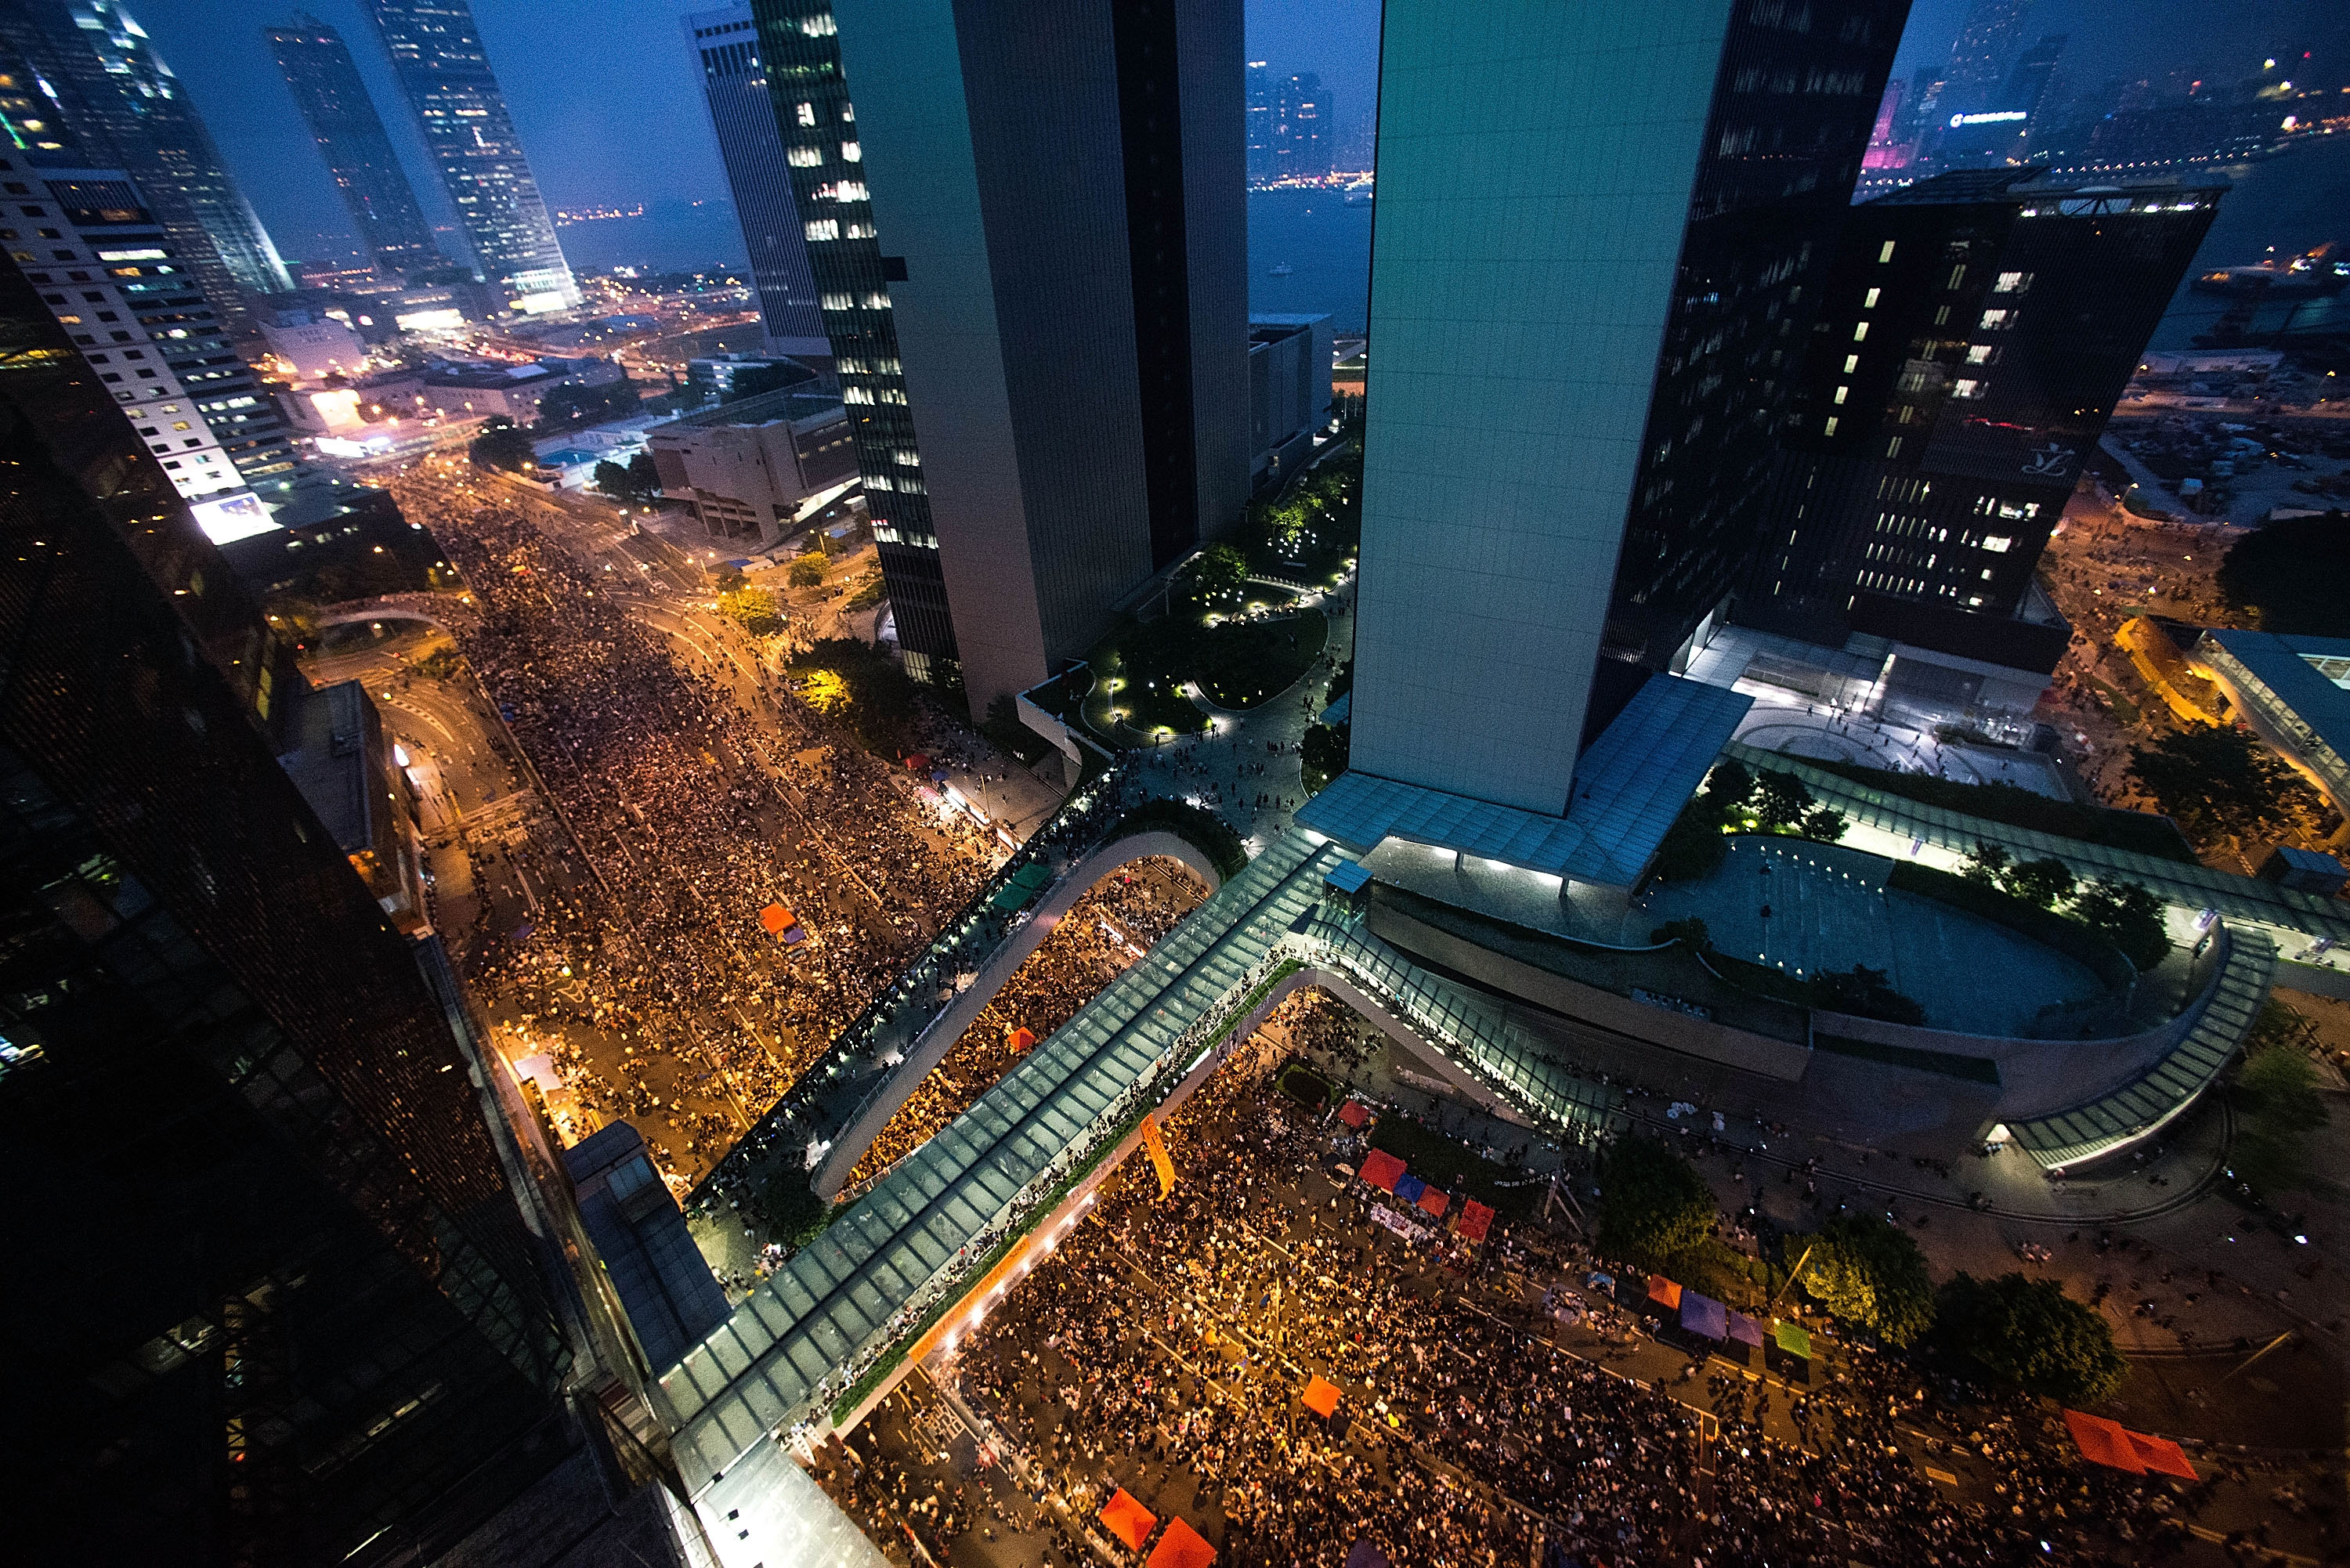 Protesters take part in a rally on a street  outside of the Hong Kong government complex in Hong Kong on Sept. 30, 2014